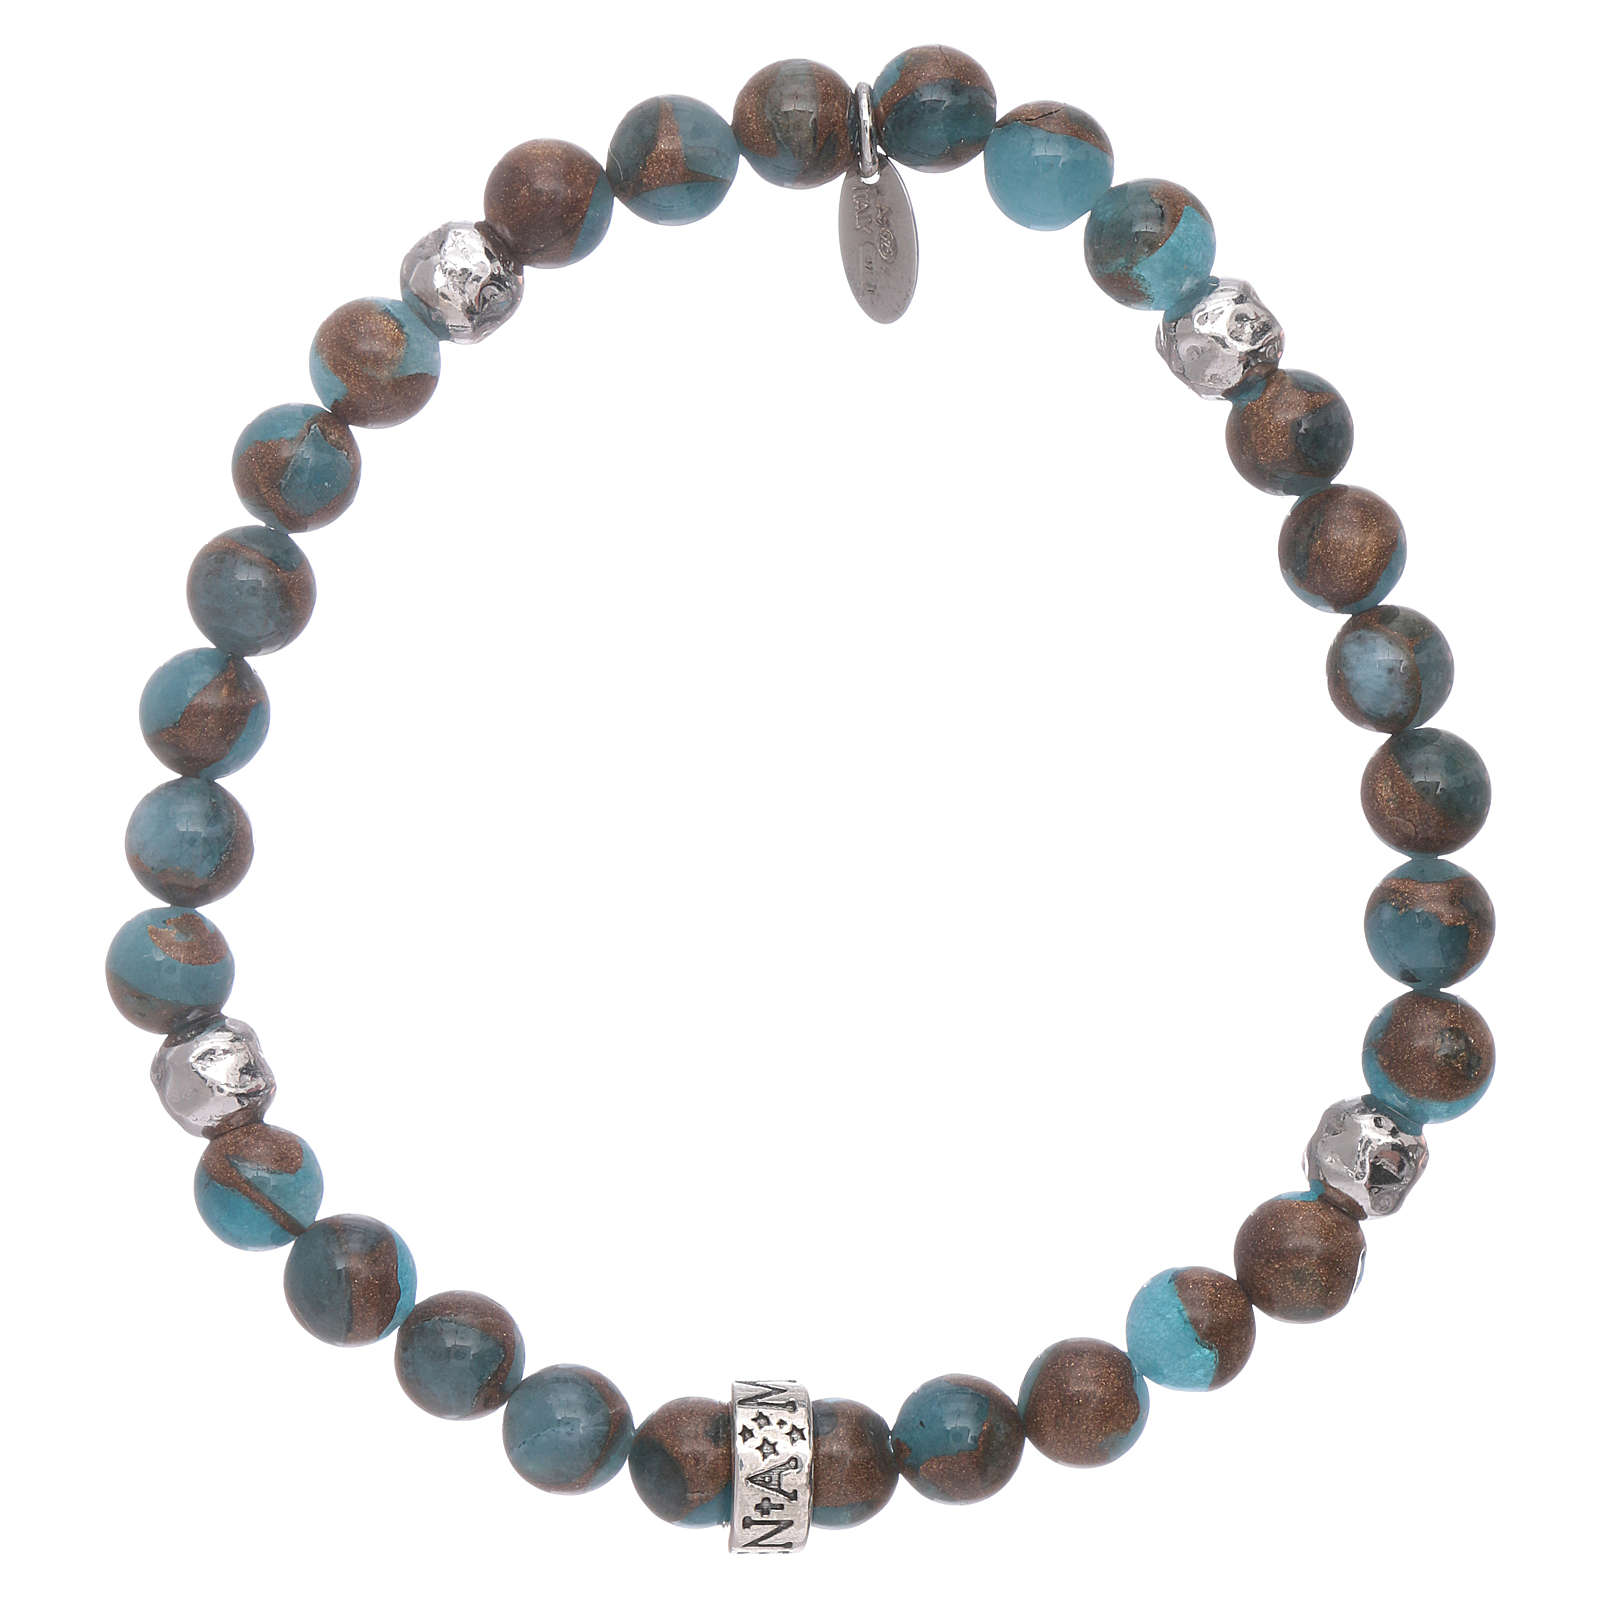 AMEN 925 sterling silver blue agate bracelet with bronzite veining 4